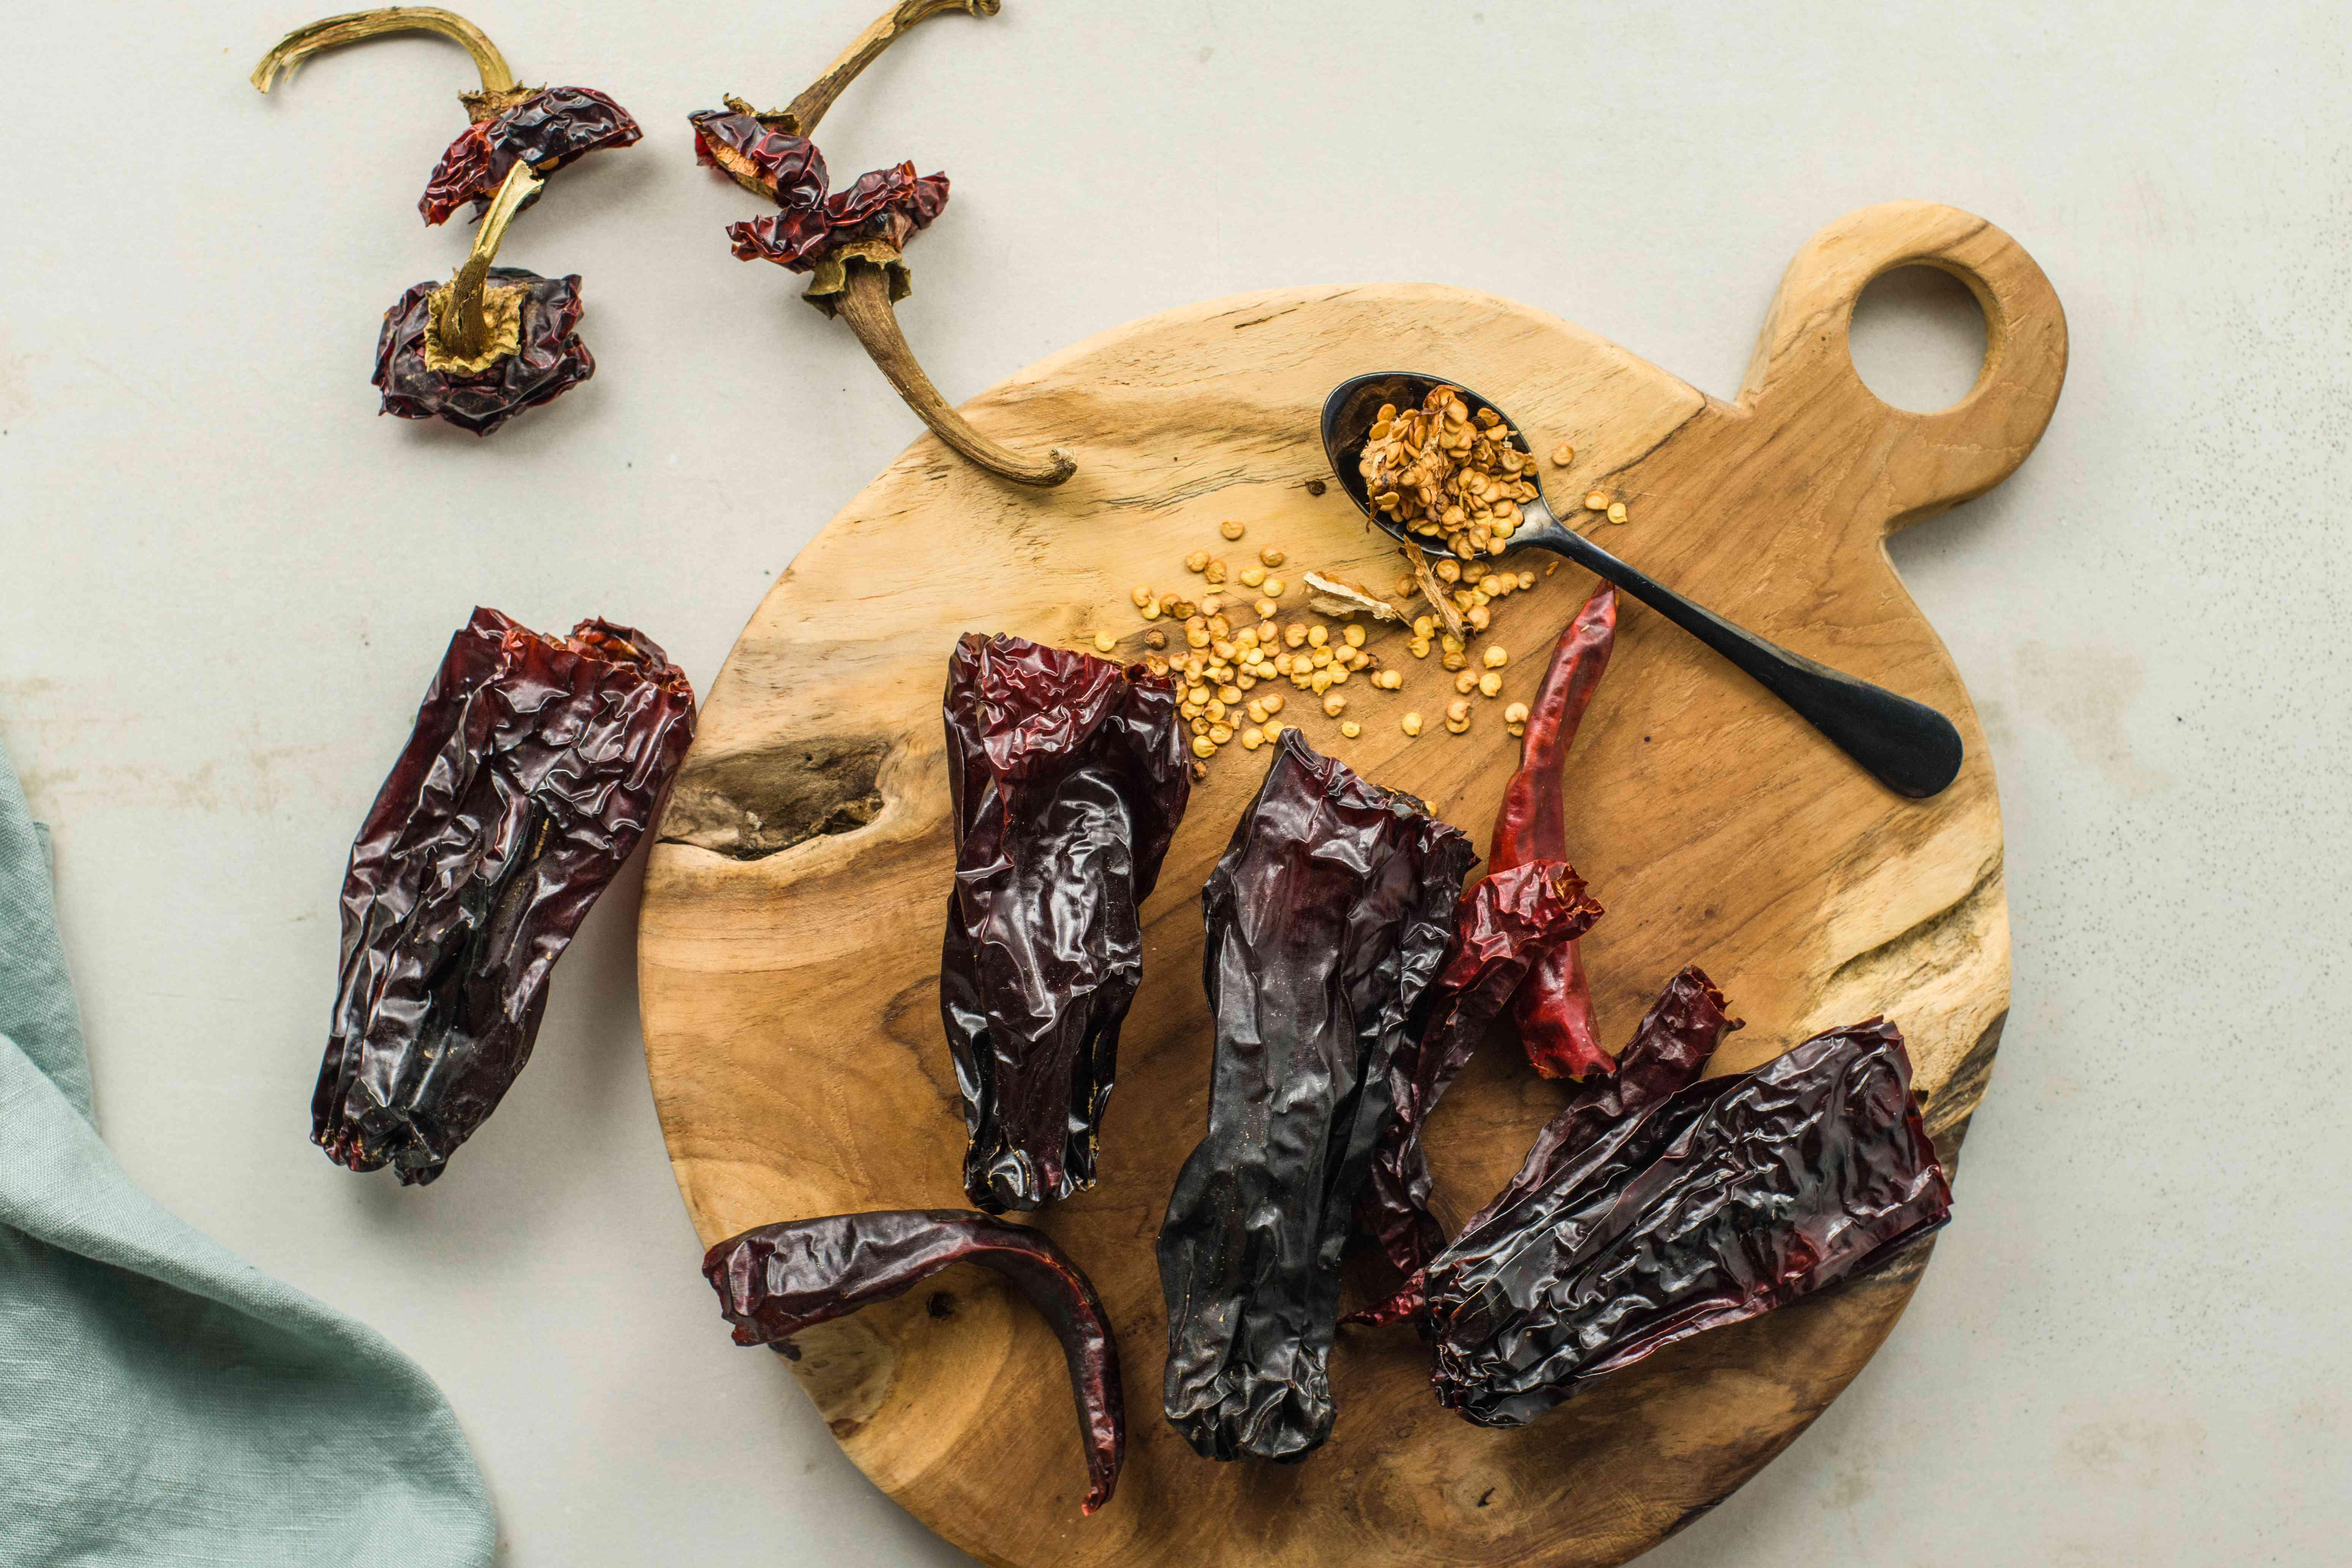 Cut tops off chiles